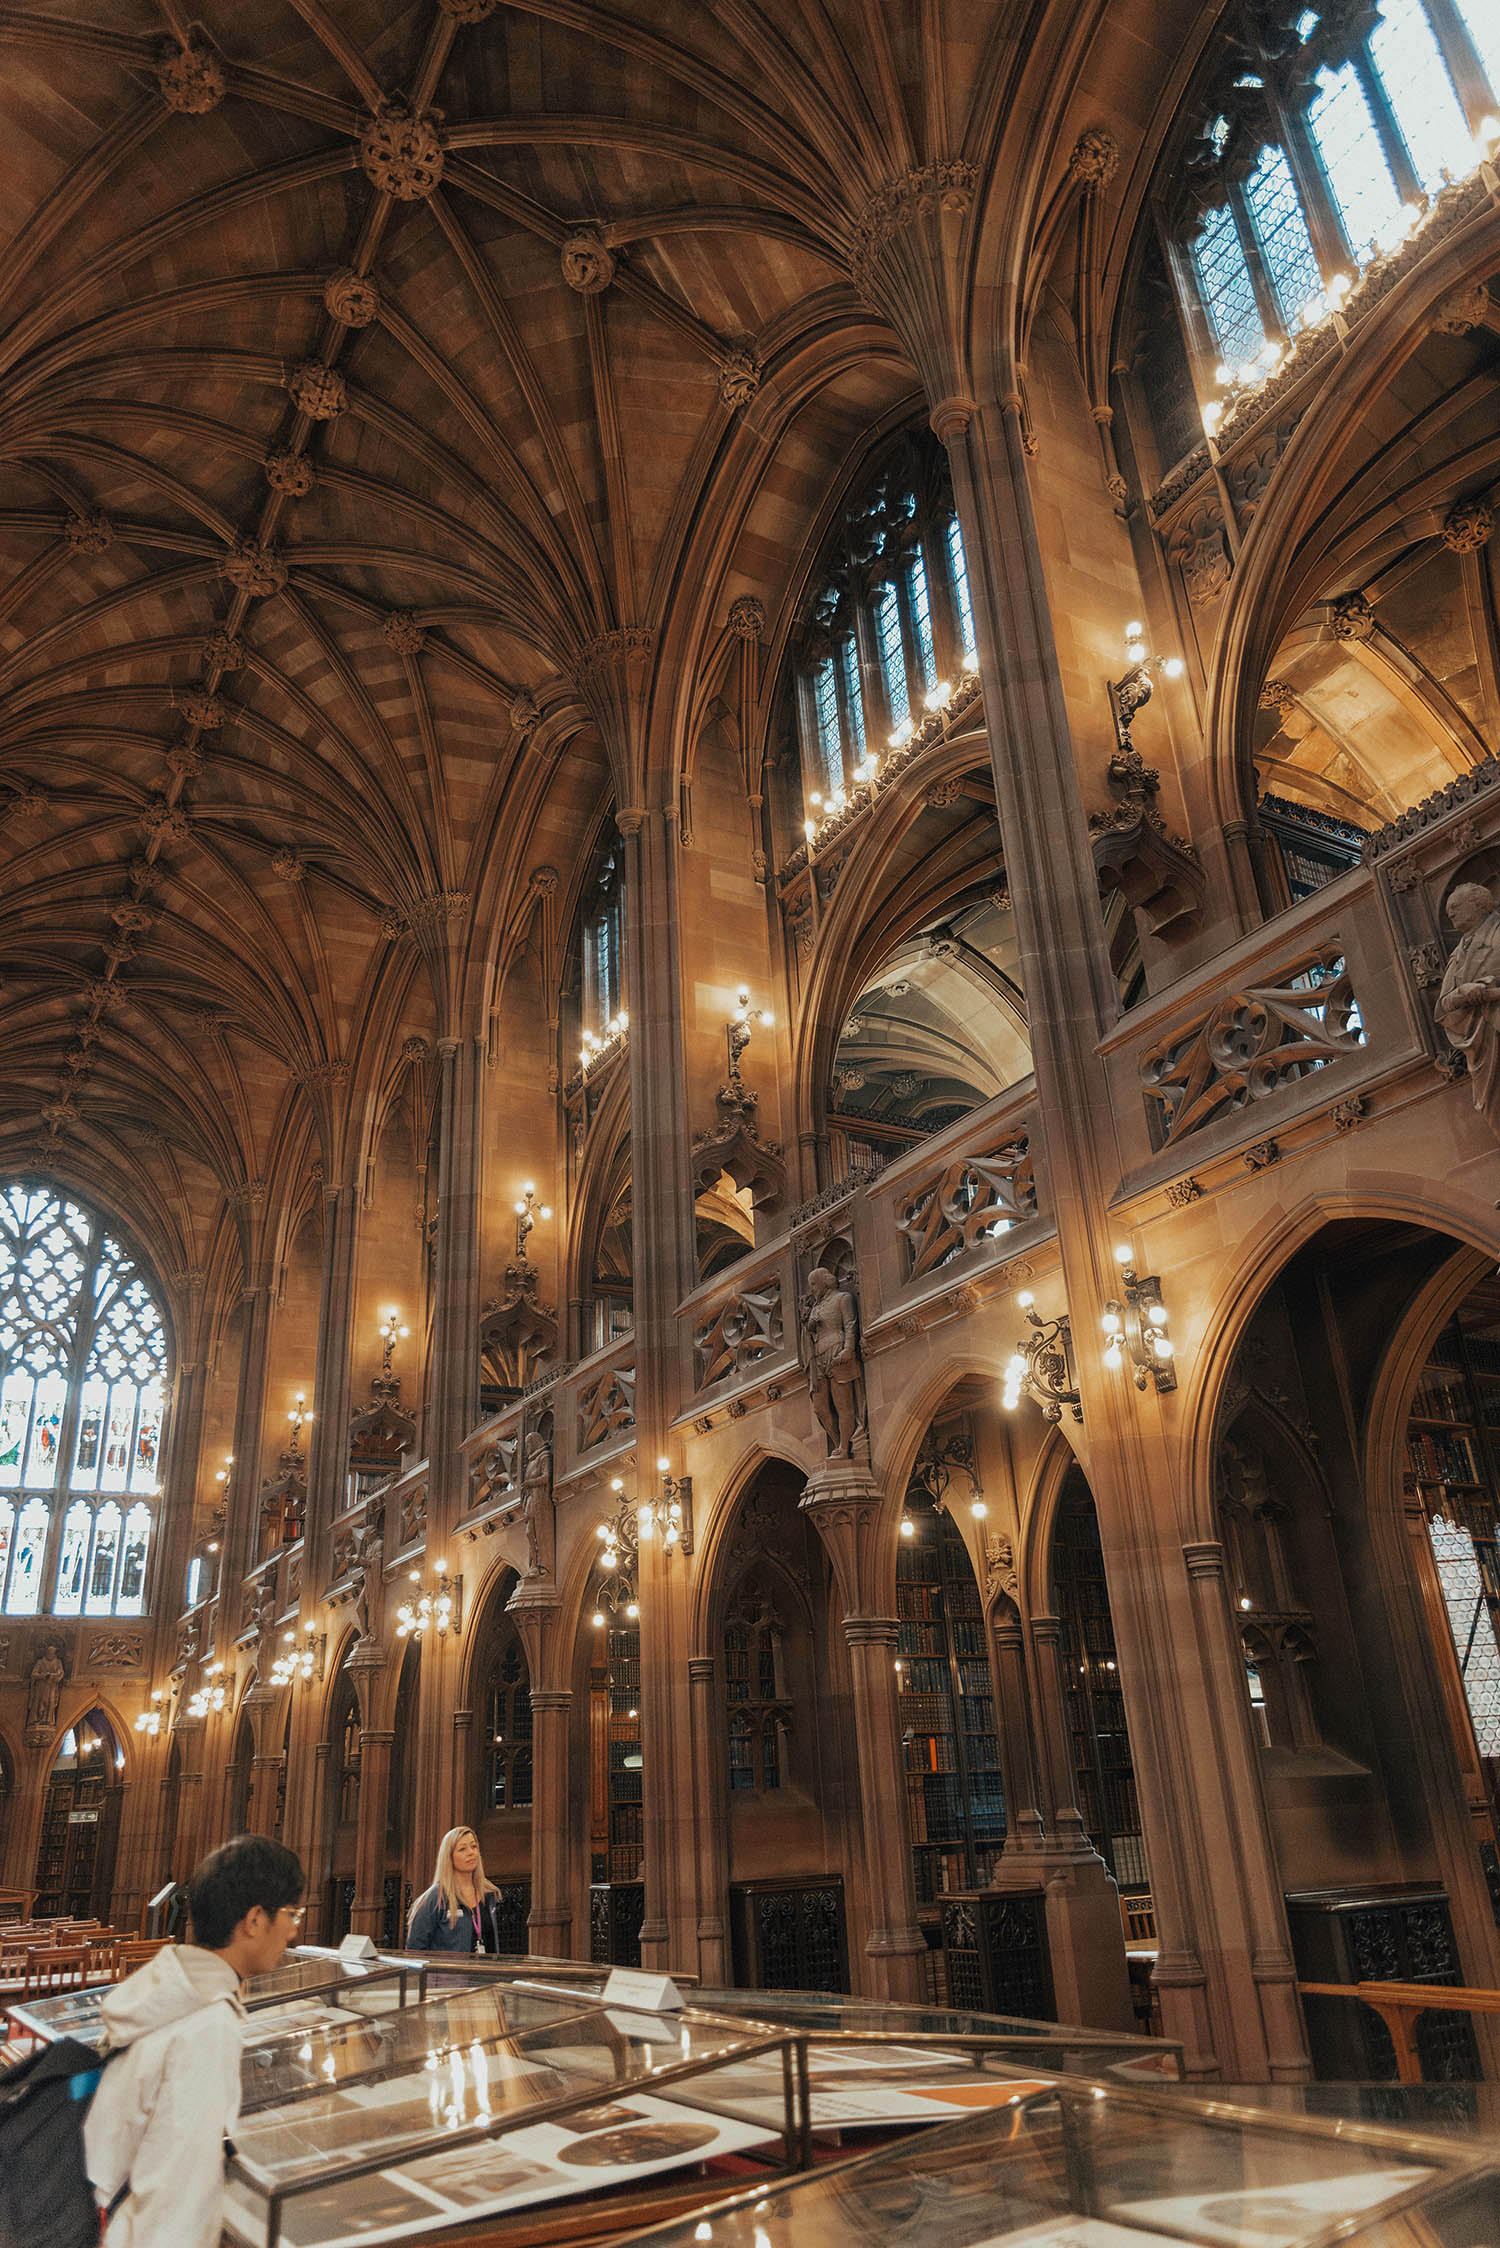 John Rylands Library, Manchester - Beautiful Interior